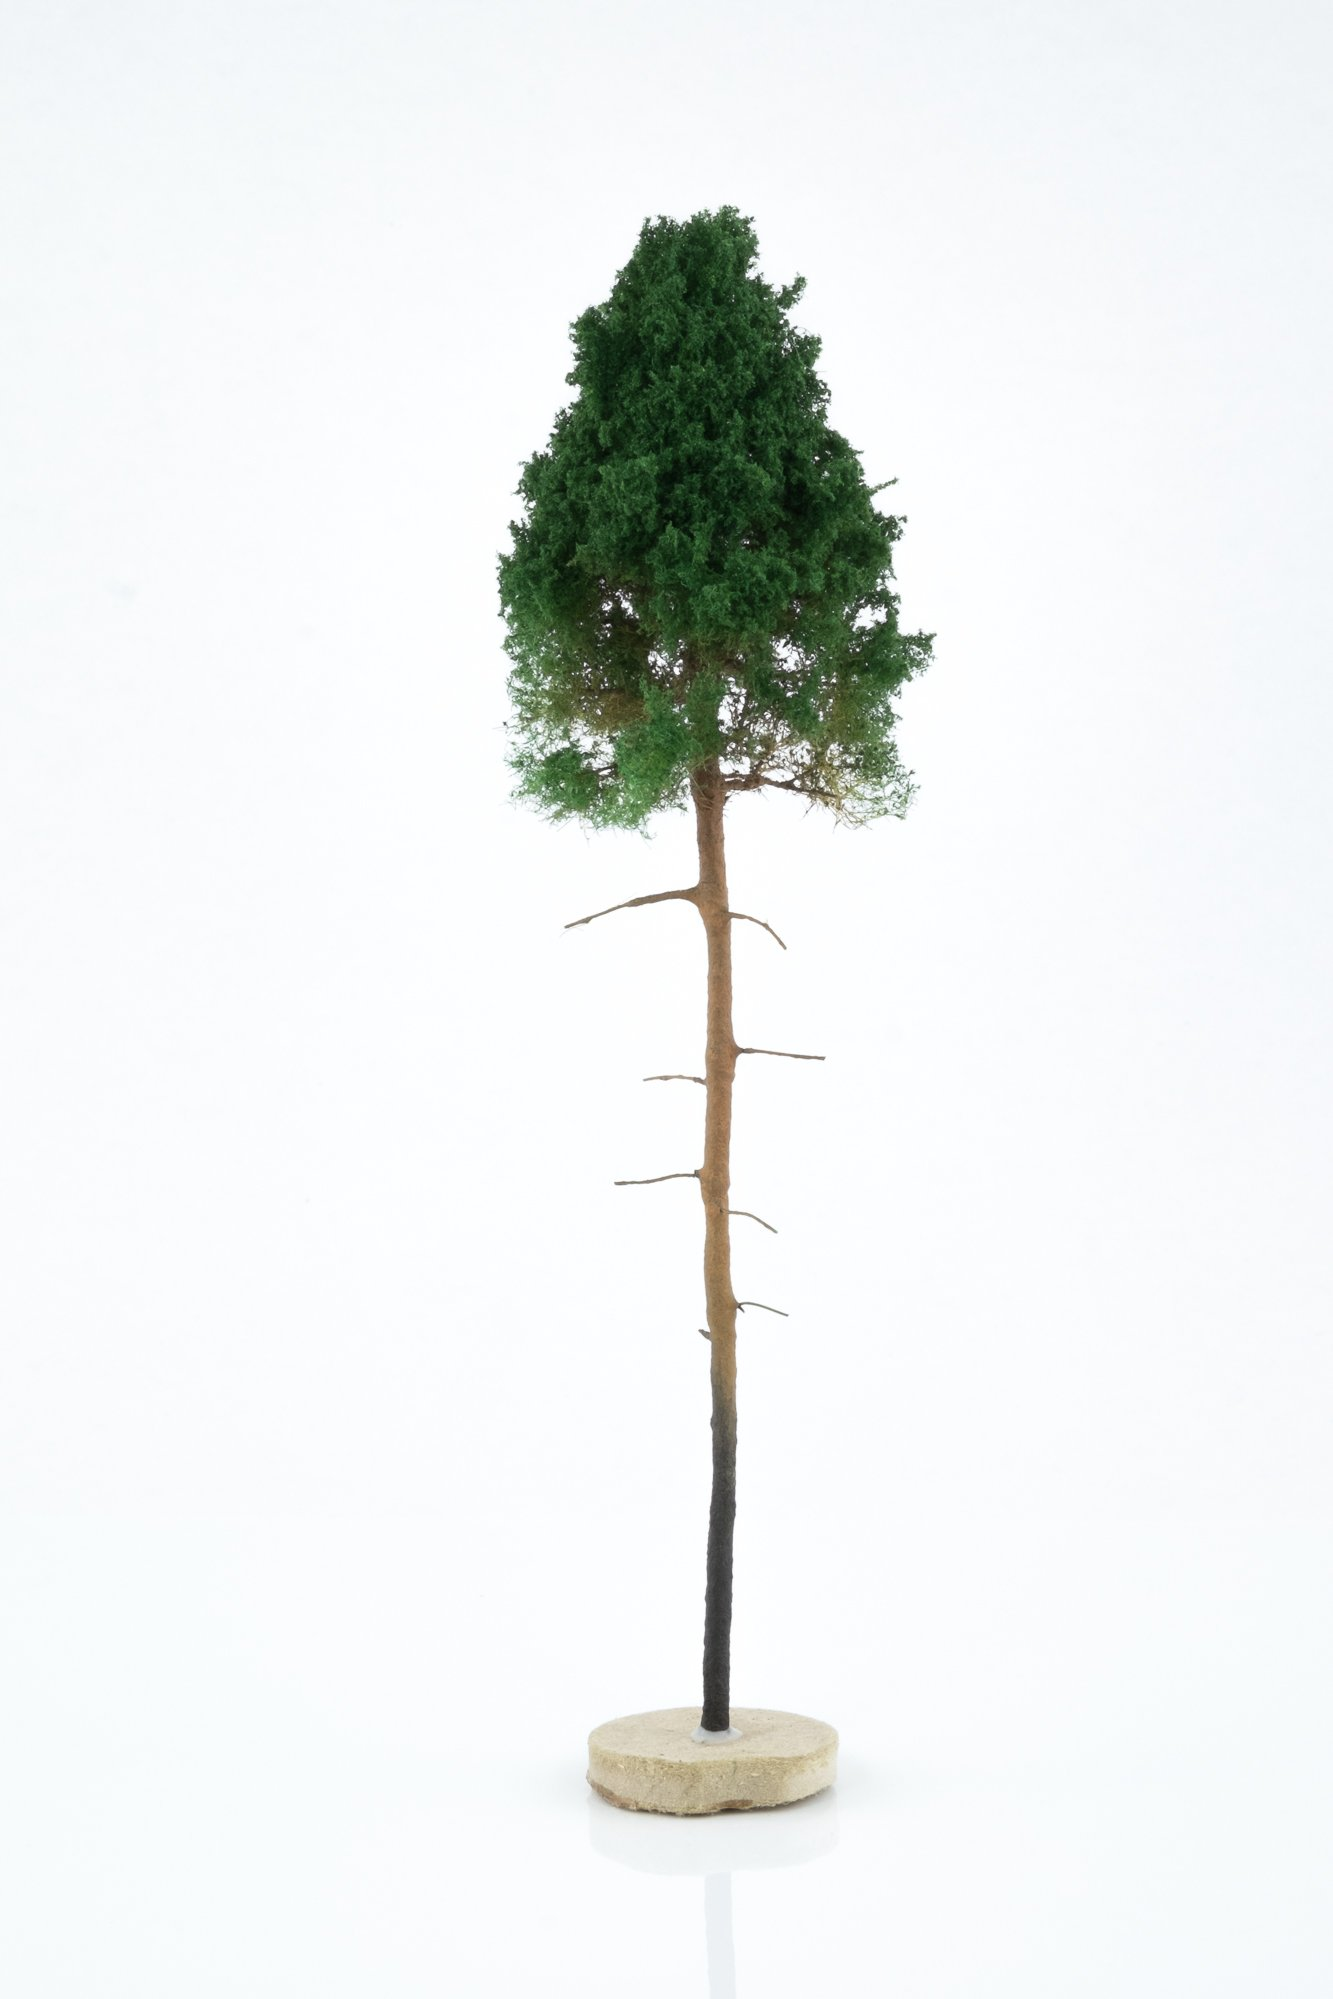 Hand-made, green, young pine tree model. Size between 14 and 16 cm. Made from high quality model supplies by Primo Models.